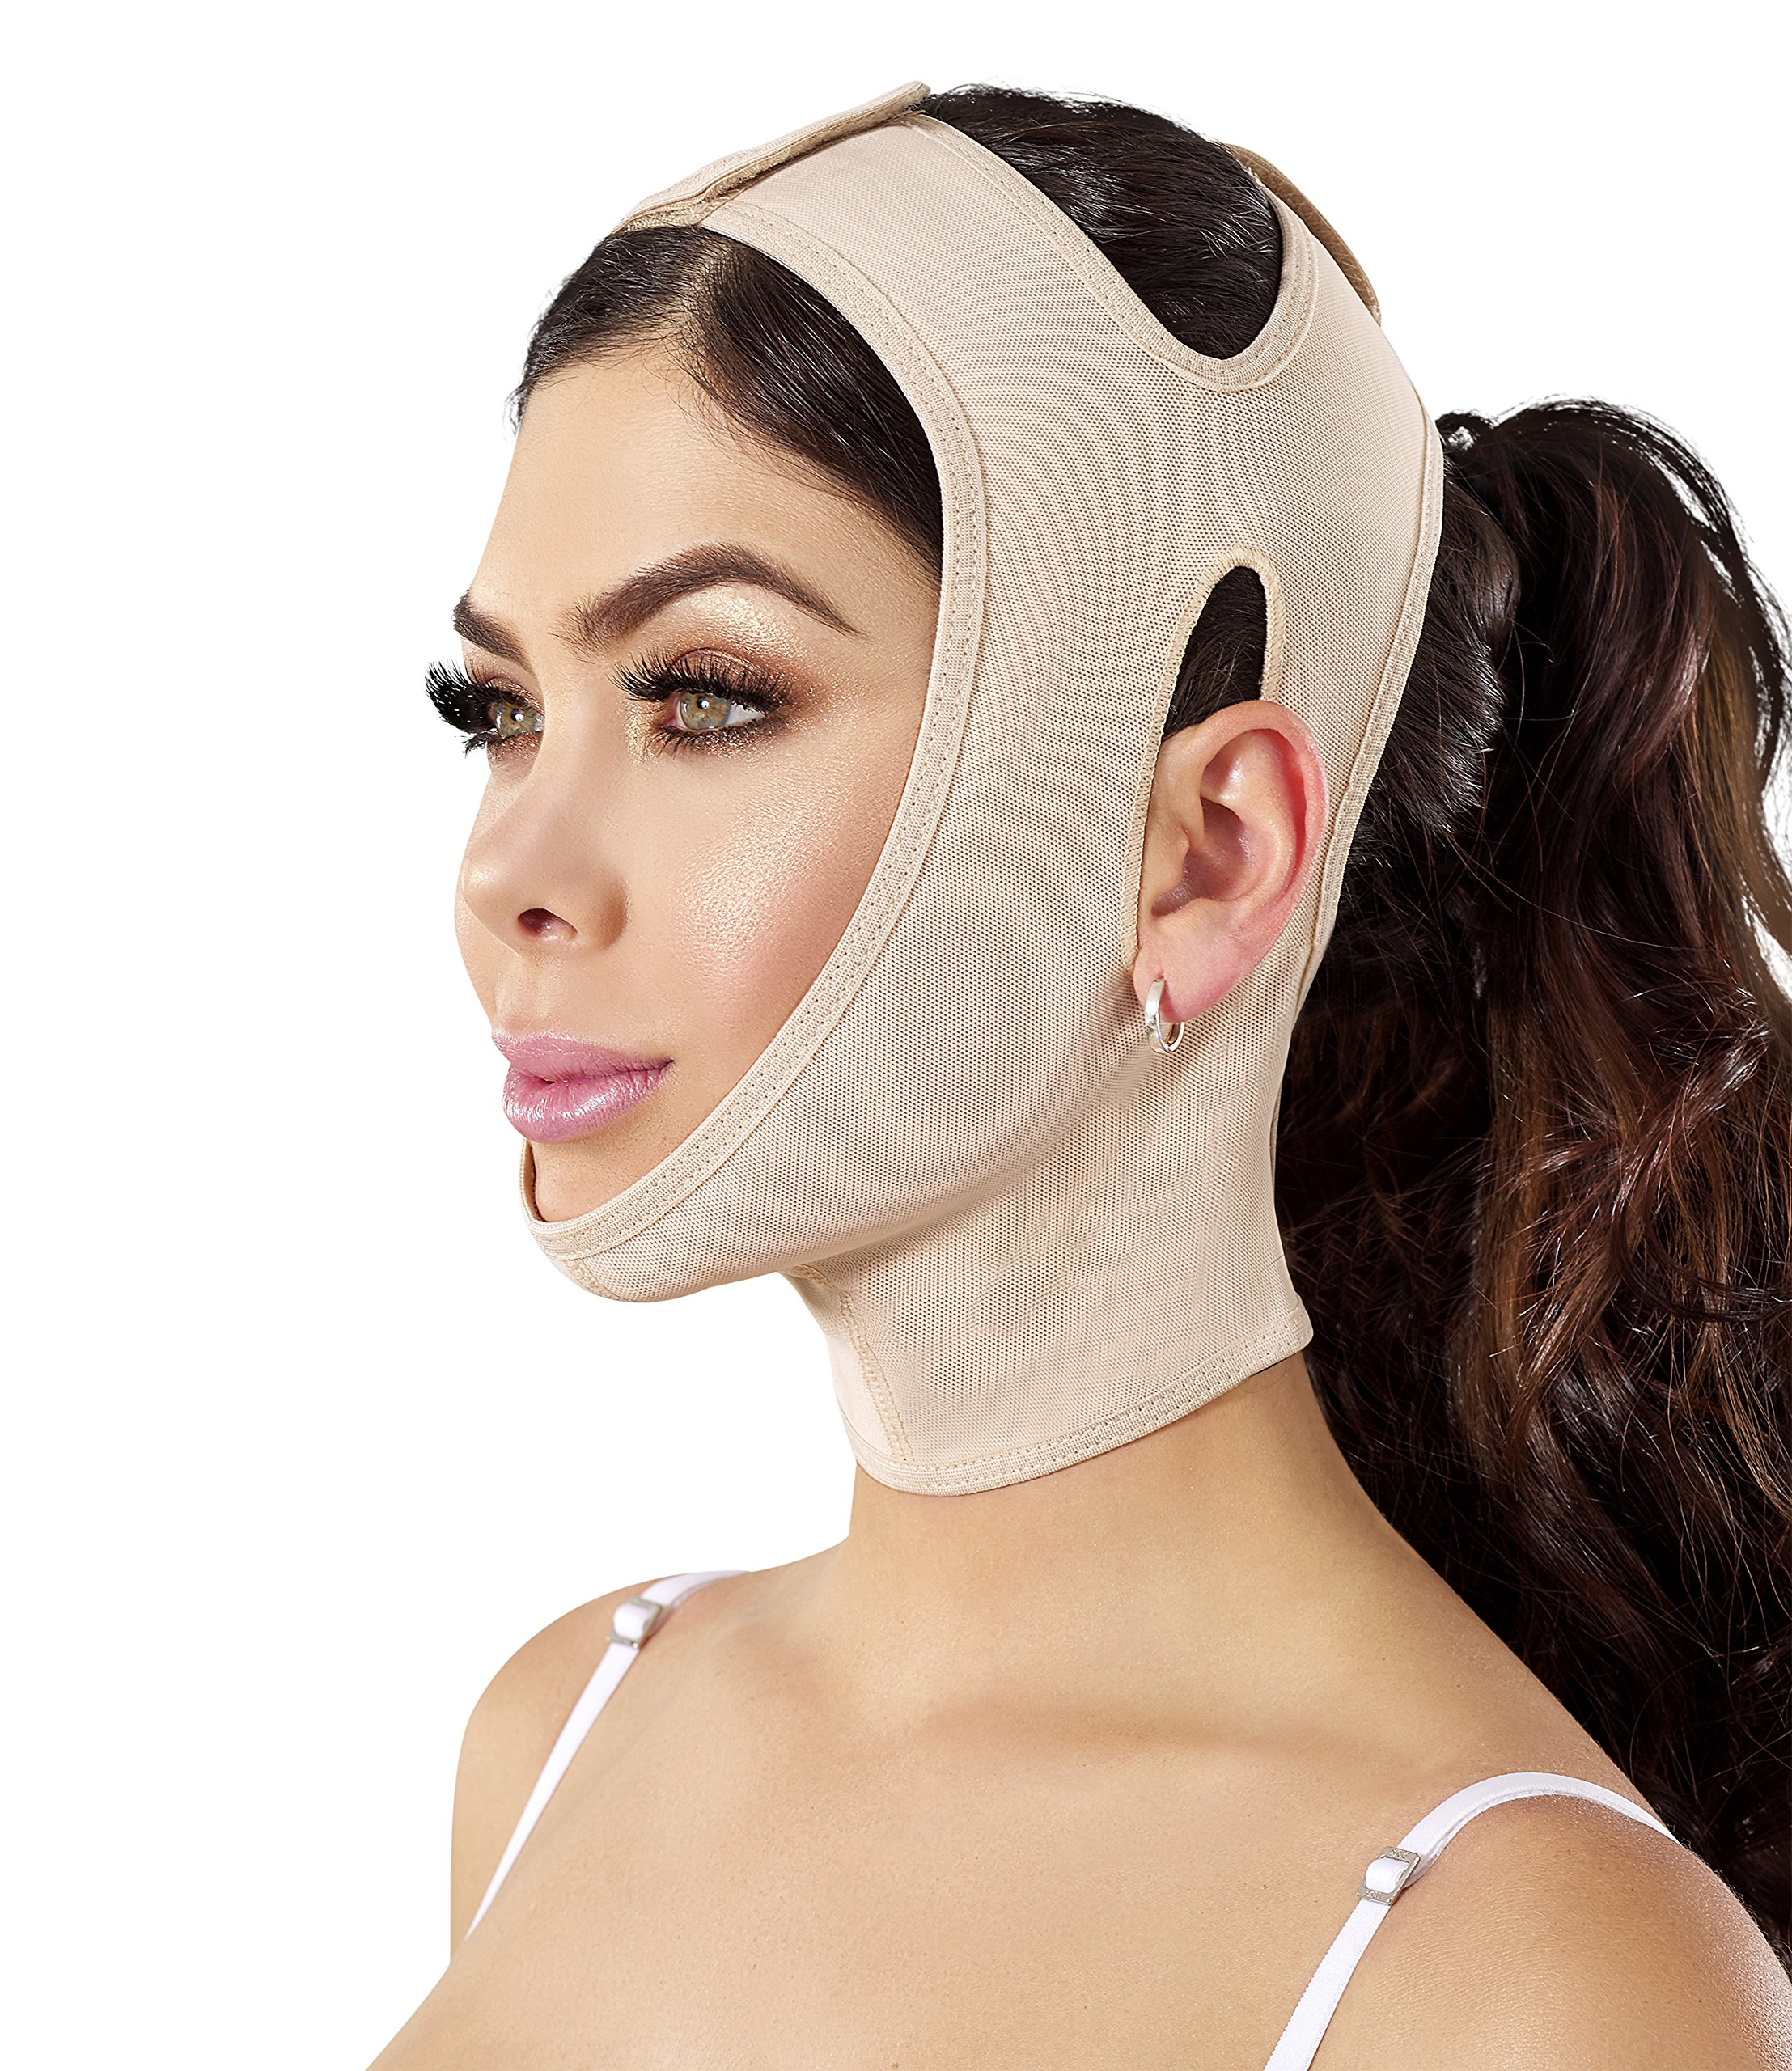 Chin strap Support Band Neck Bandage Mentonera Post Quirurgica Face Lifting Slimmer Chin Lift Facial Compression SCA001 (Large, Beige)